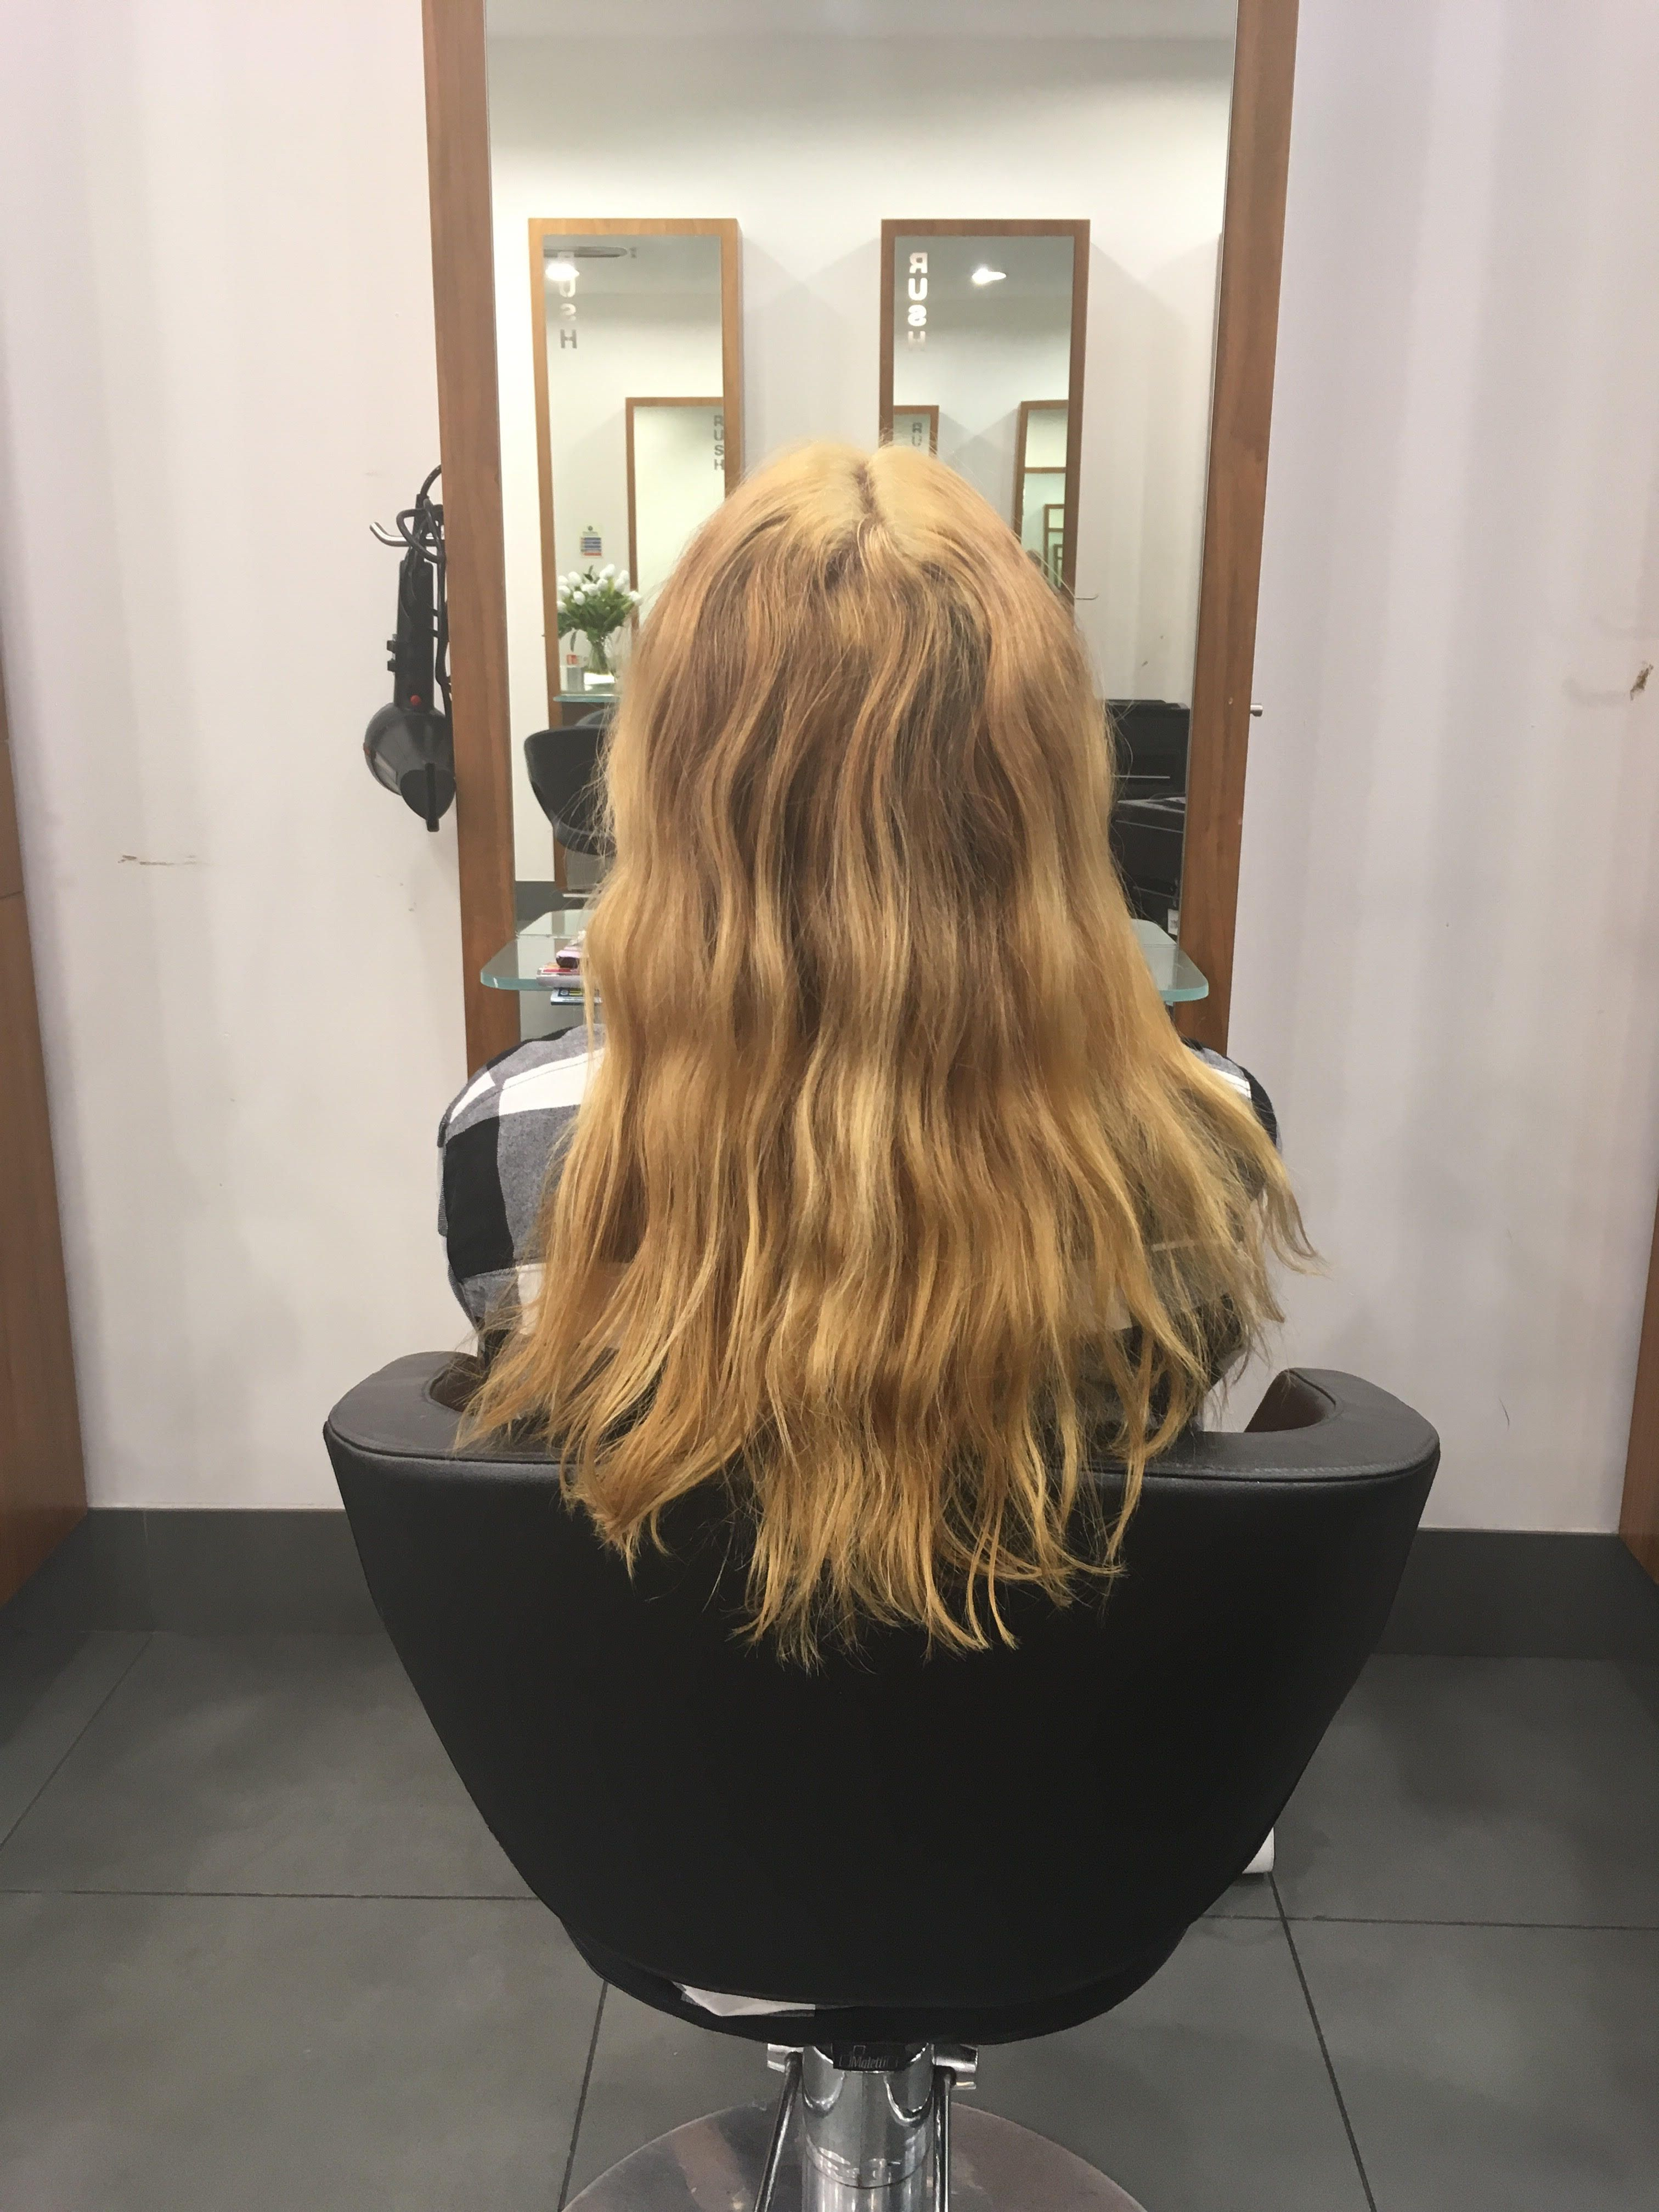 Before and after a bad bleach job. hair beauty Skin